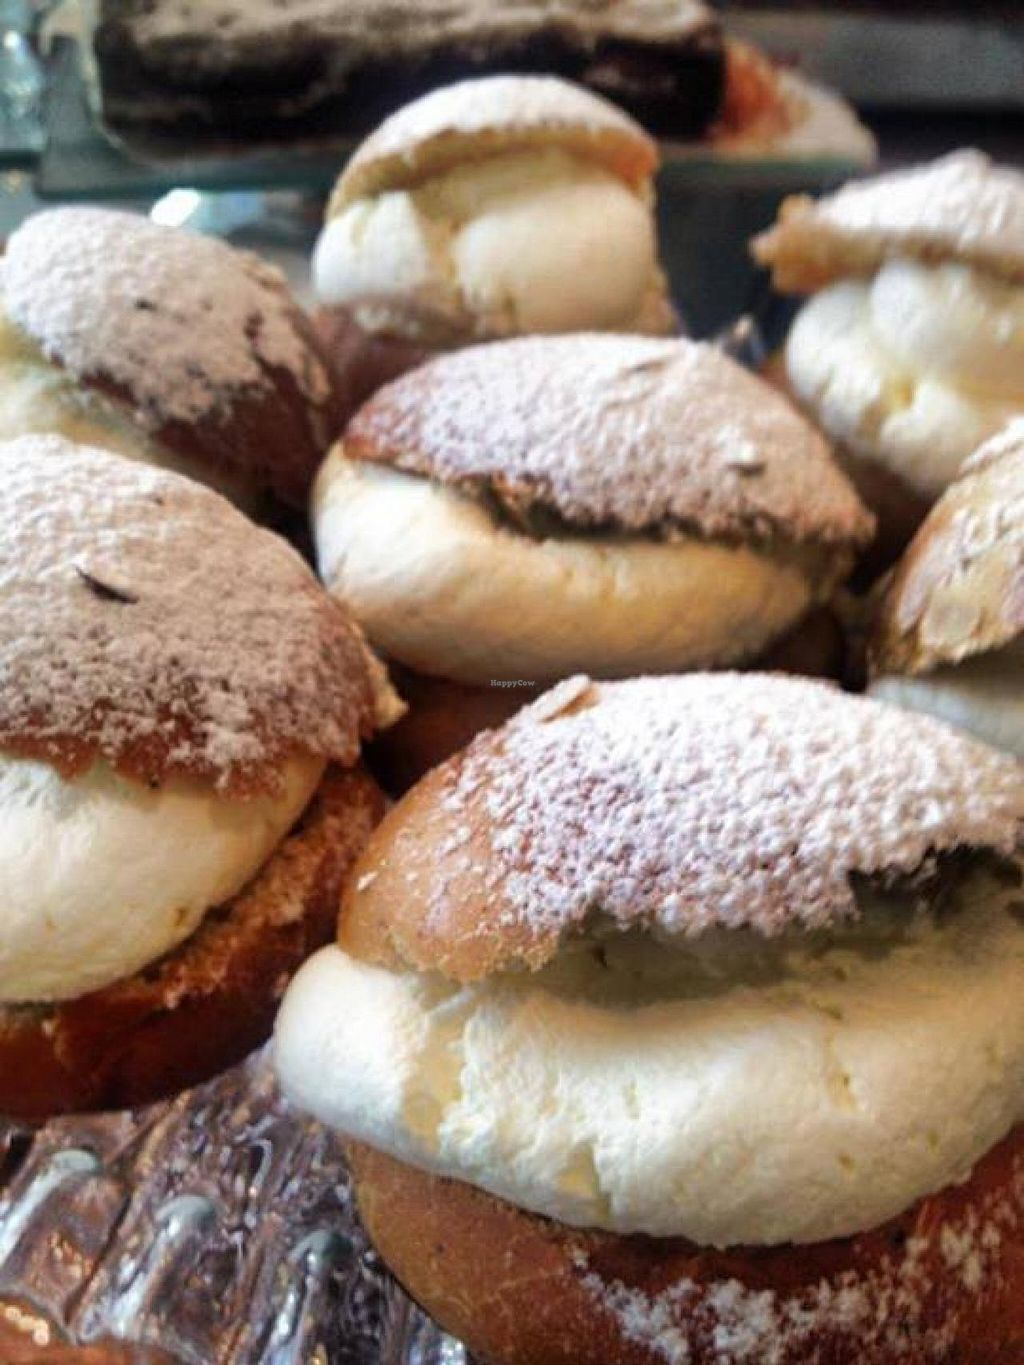 "Photo of Carla's Conditorie  by <a href=""/members/profile/community"">community</a> <br/>A traditional Swedish delicacy <br/> February 19, 2014  - <a href='/contact/abuse/image/45055/64576'>Report</a>"